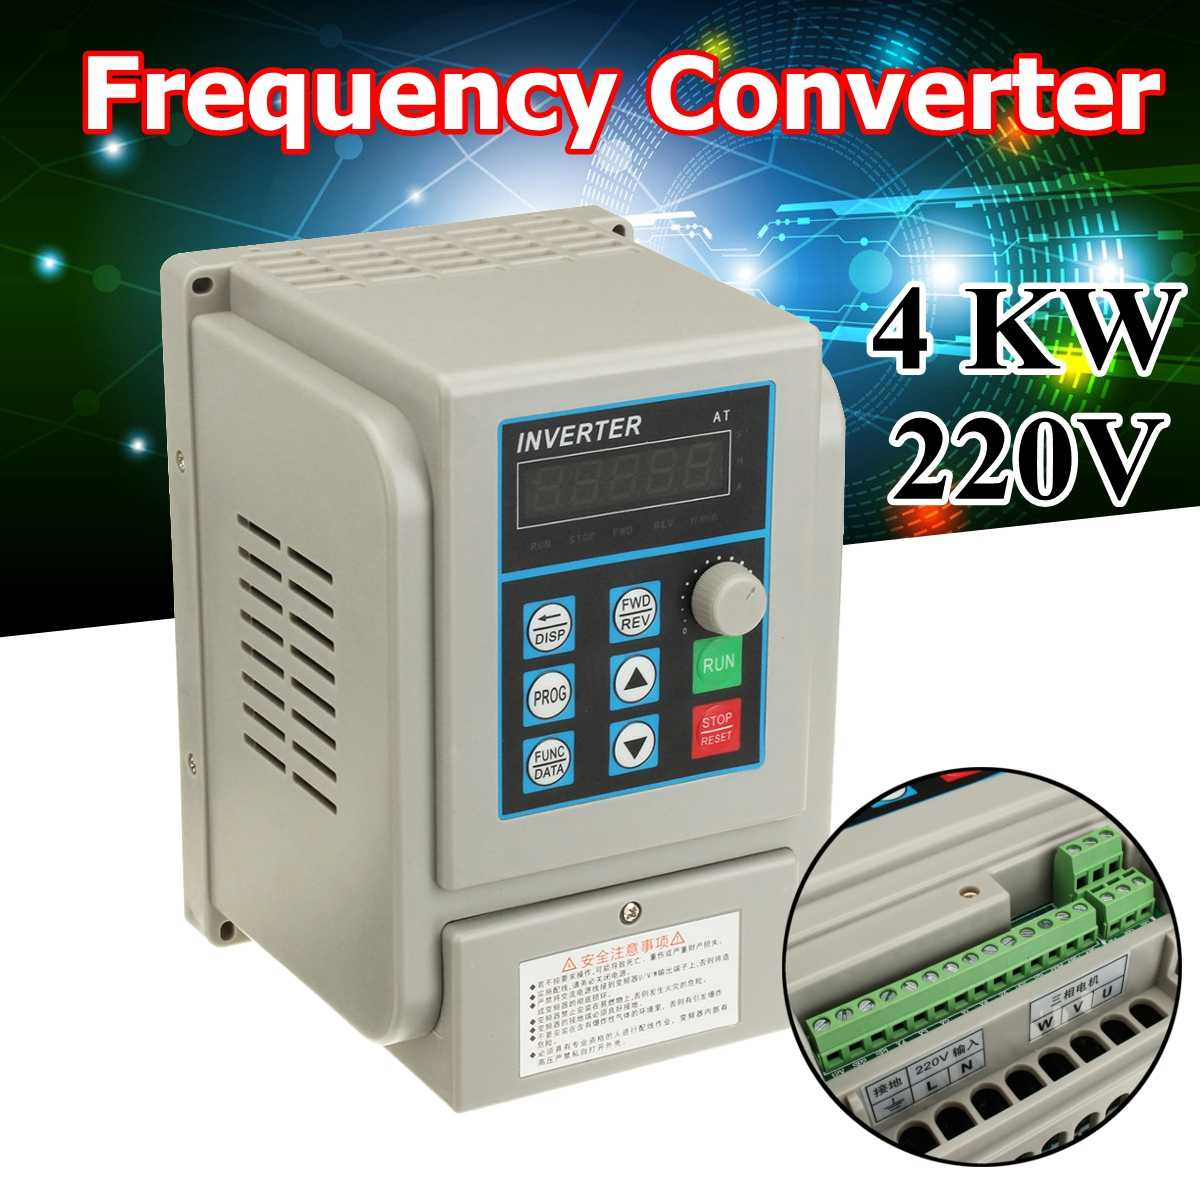 AC 220V Frequency Converter 4KW Variable Frequency Drive Converter VFD Speed Controller ConverterAC 220V Frequency Converter 4KW Variable Frequency Drive Converter VFD Speed Controller Converter